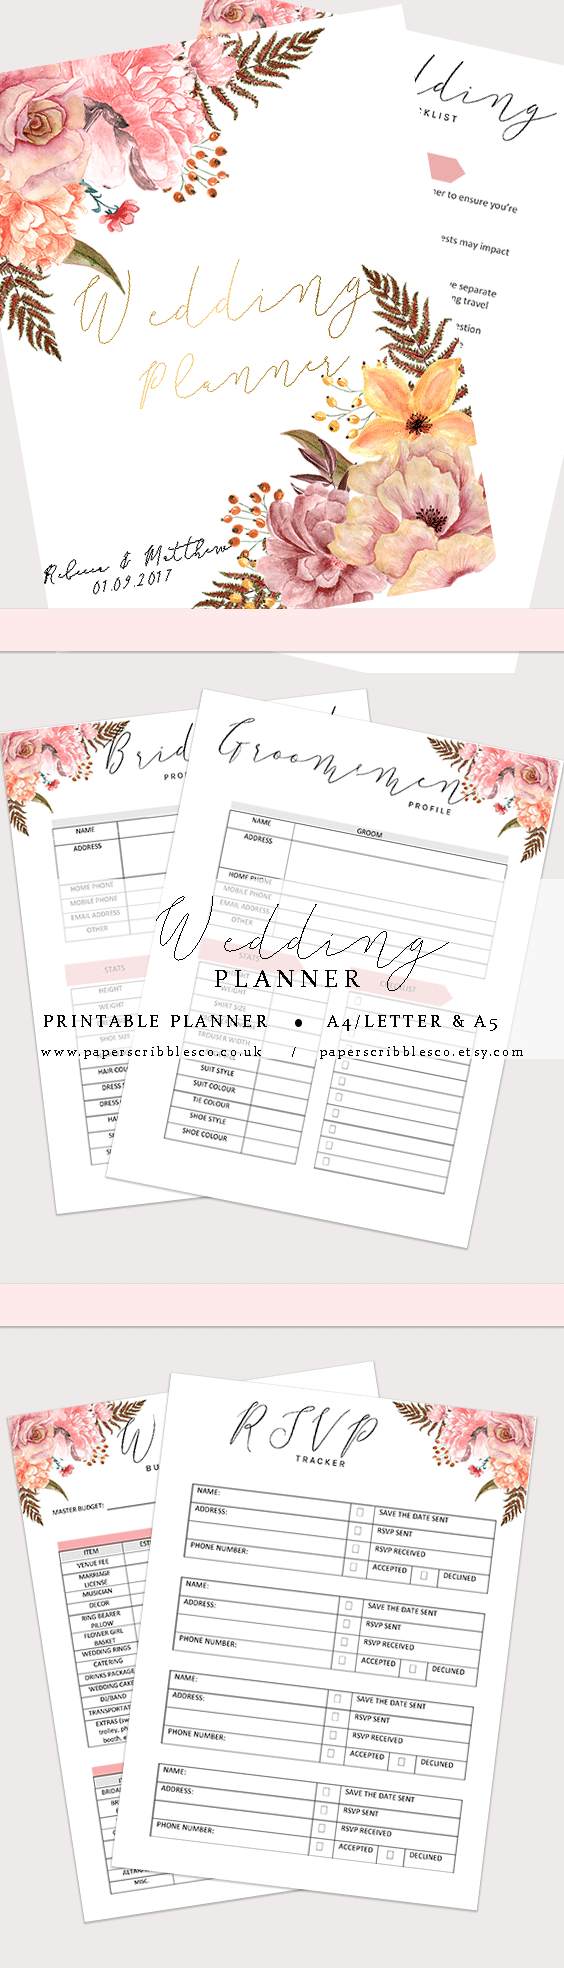 wedding planner printable wedding organizer wedding binder